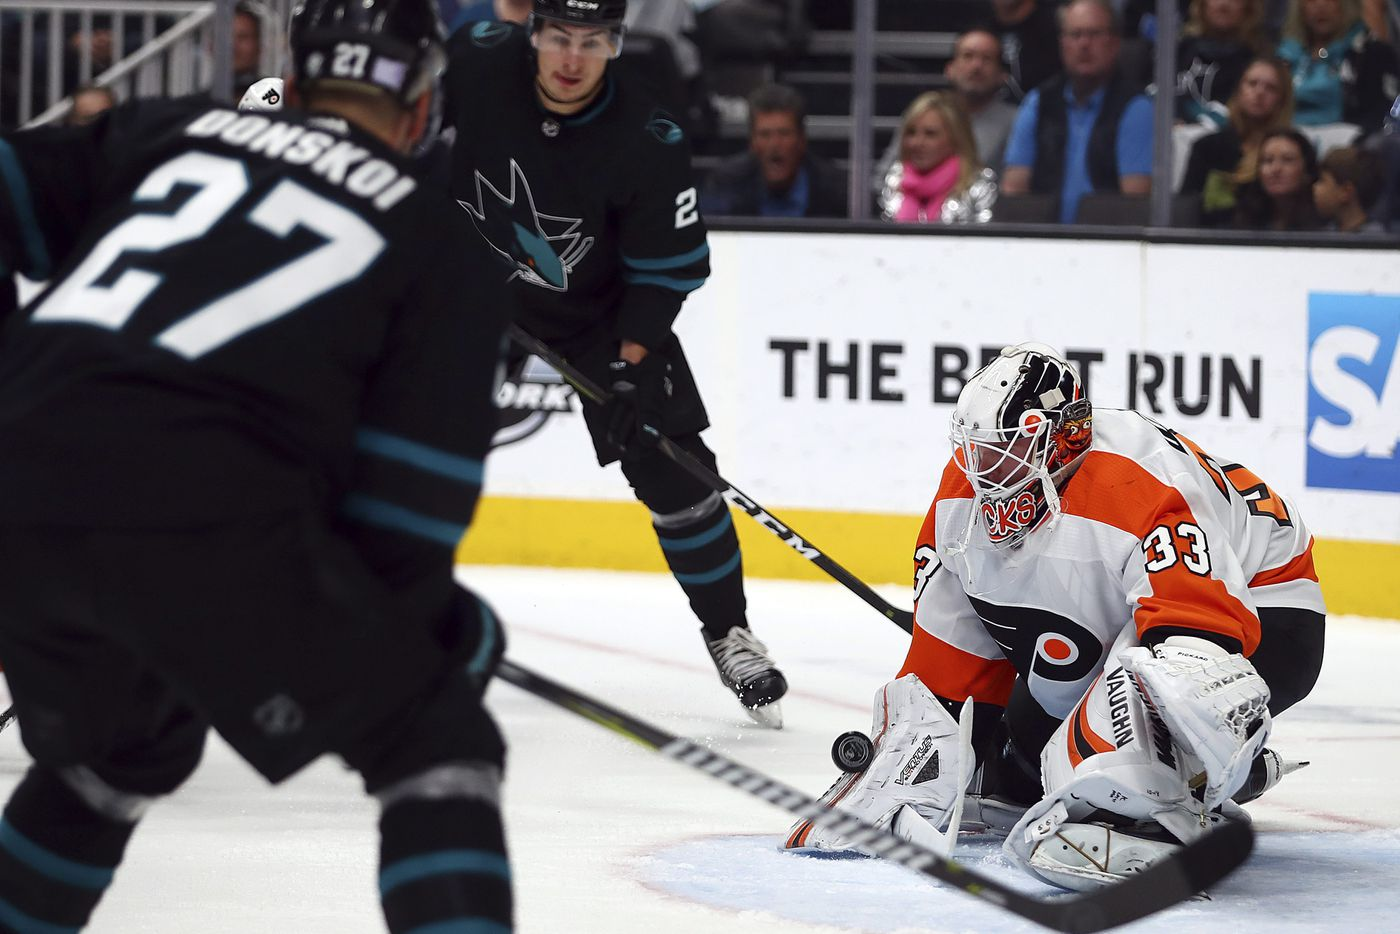 Flyers give up two late goals in overtime loss to San Jose Sharks